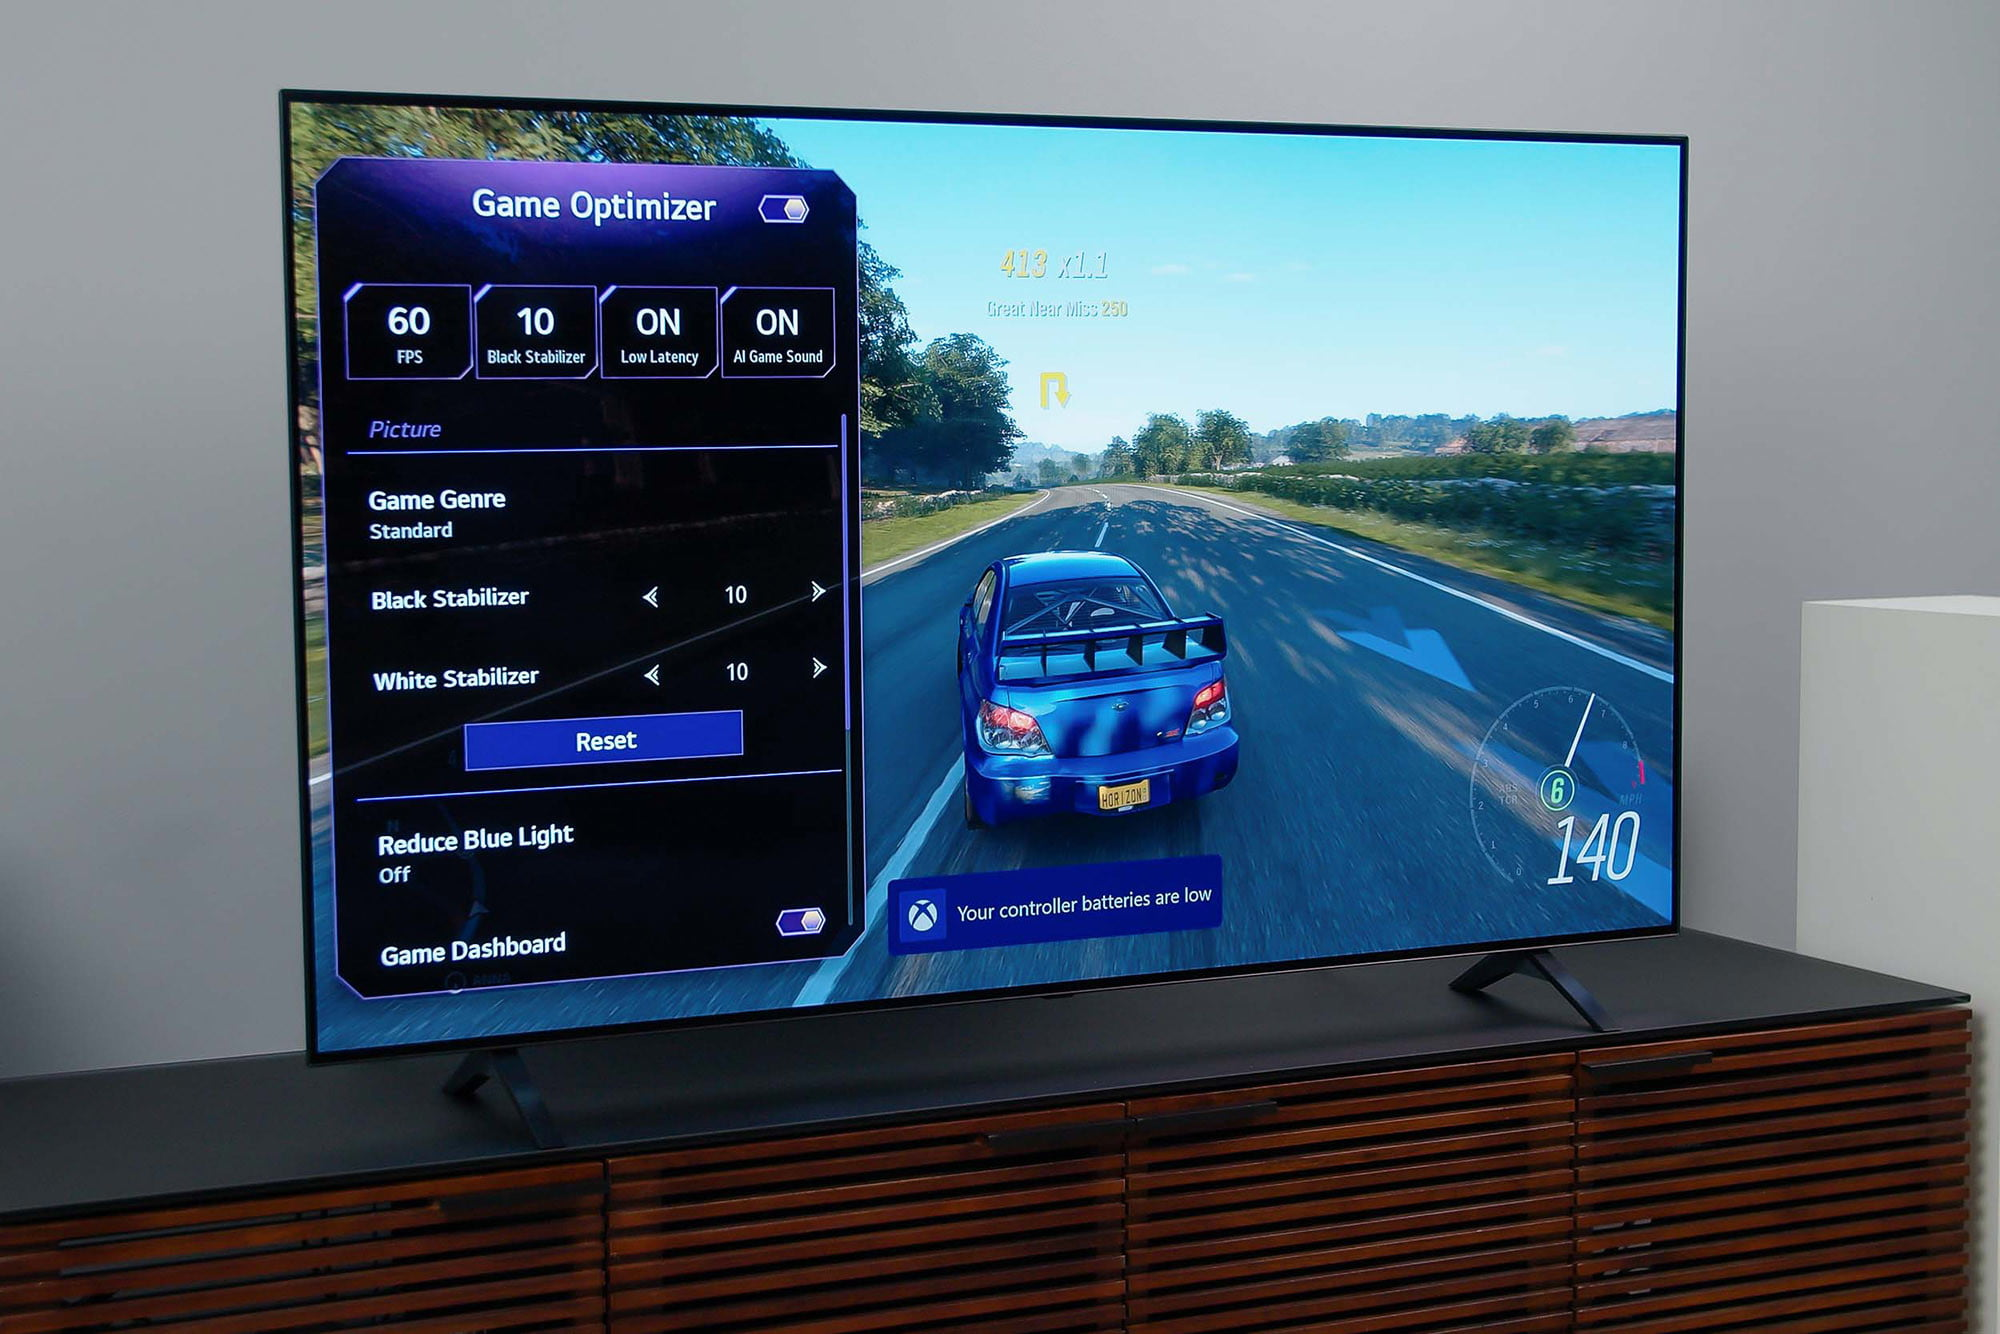 Game optimizer settings on the LG A1 OLED 4K HDR TV.